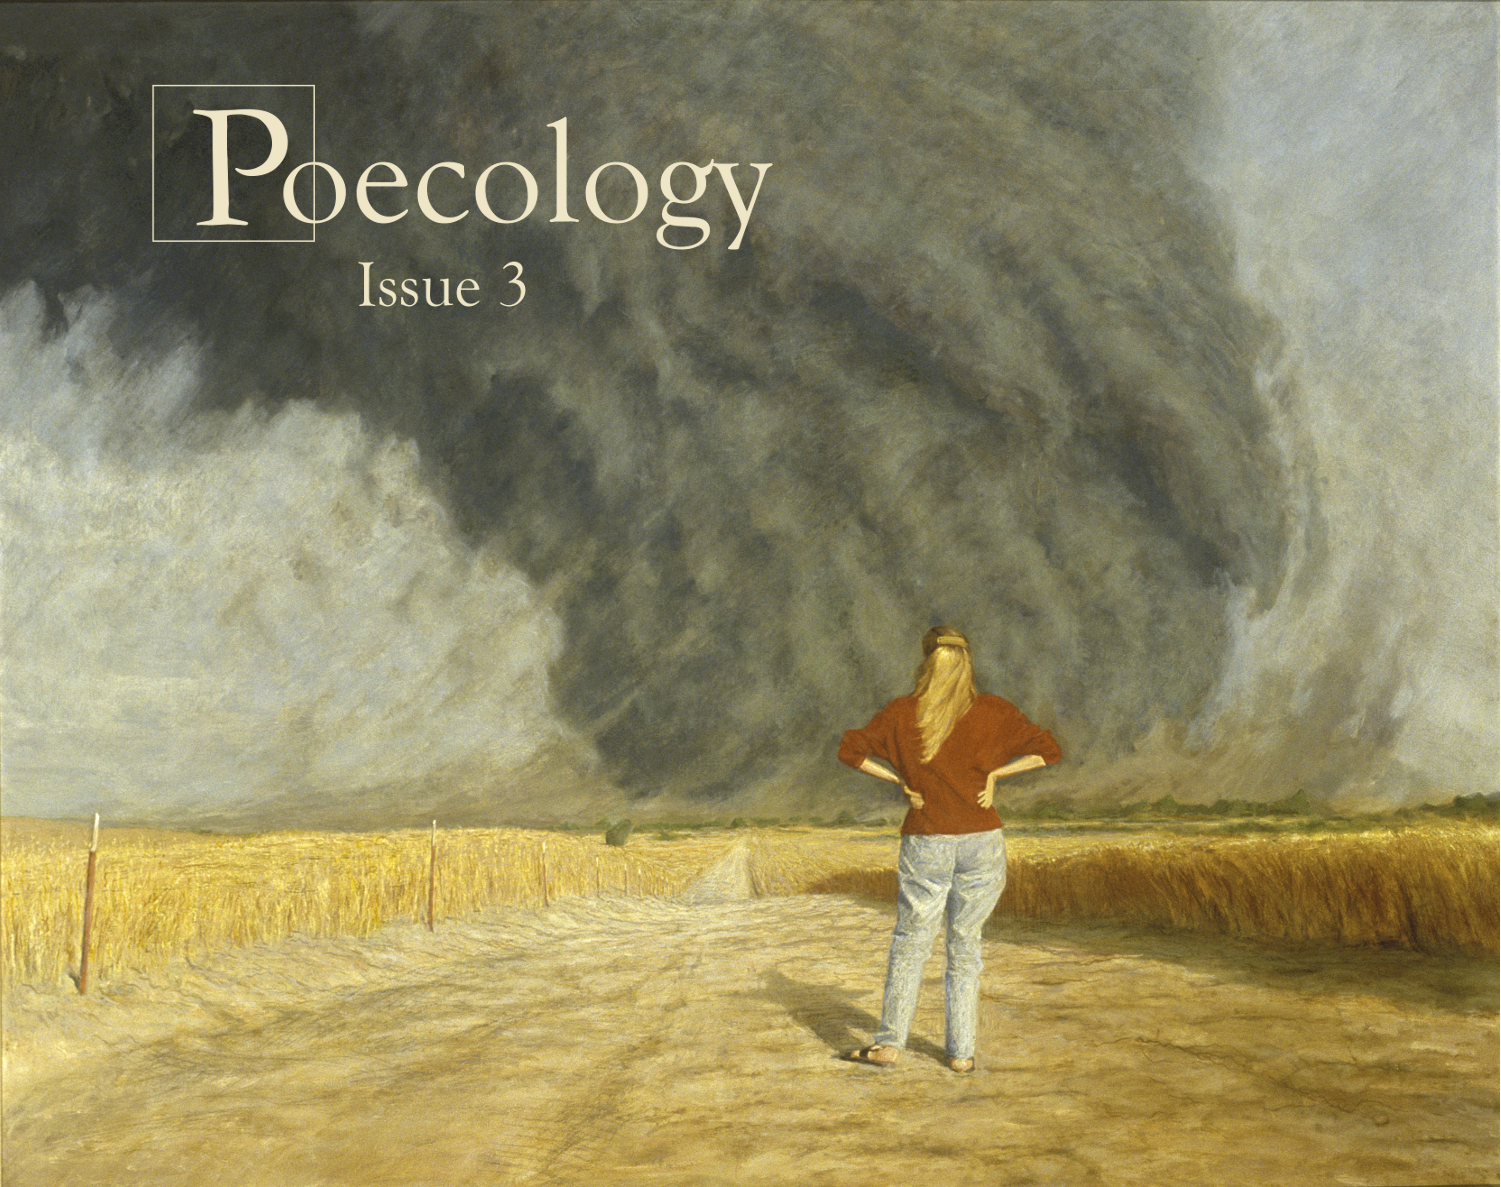 Issue 3 Poecology